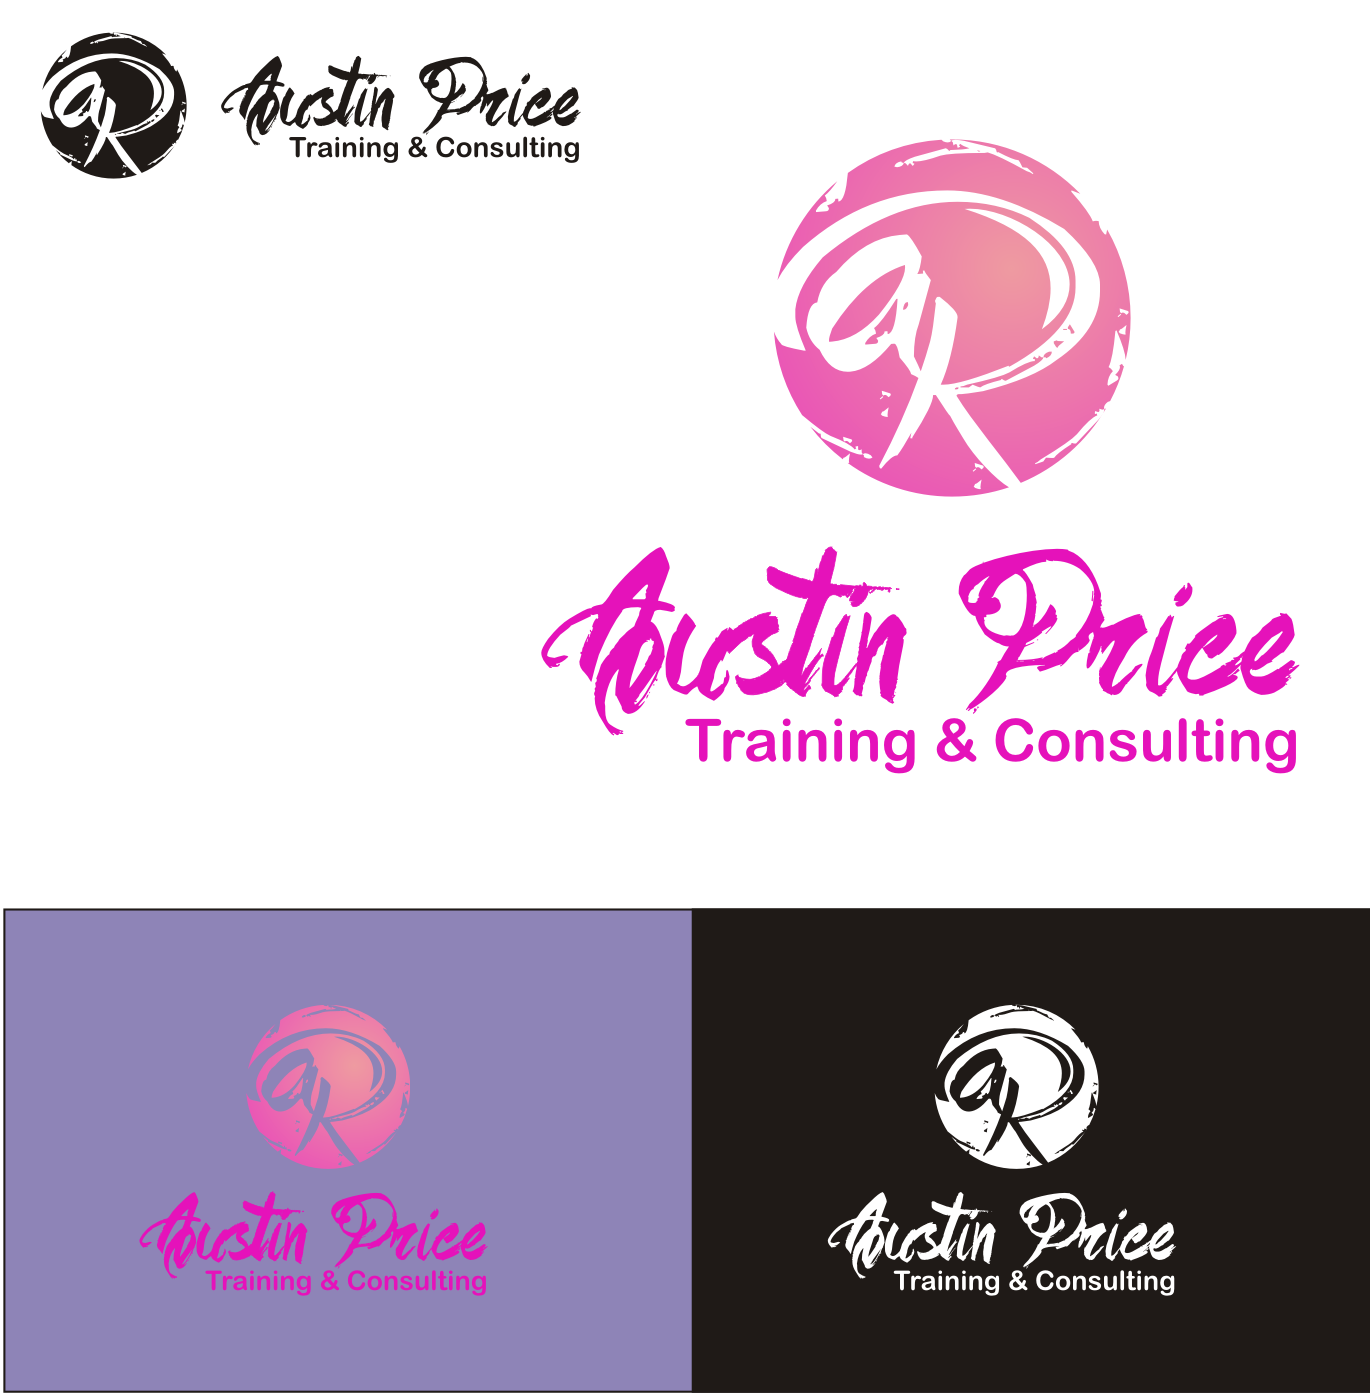 Logo Design by Nthus Nthis - Entry No. 174 in the Logo Design Contest Artistic Logo Design for Austin Price Advisory.